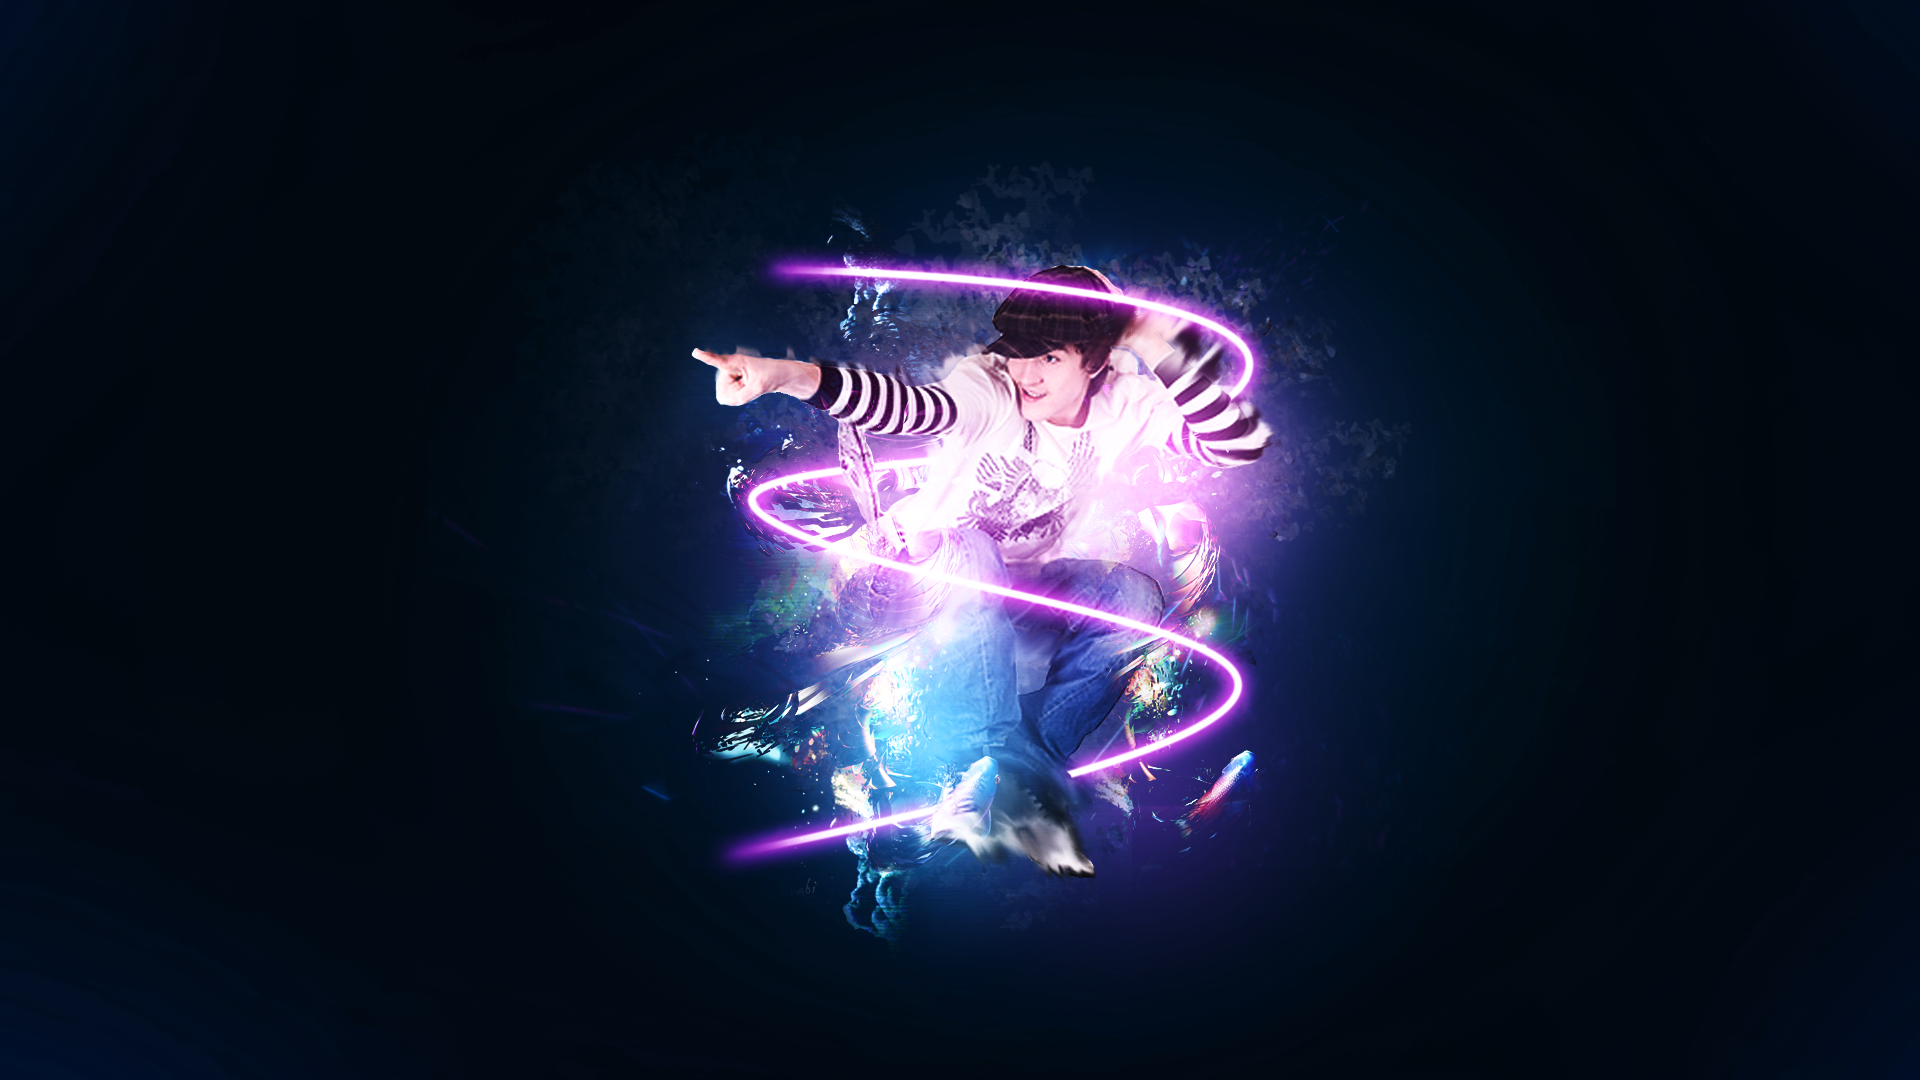 Wallpaper hip hop dancer by StylishArt94 1920x1080